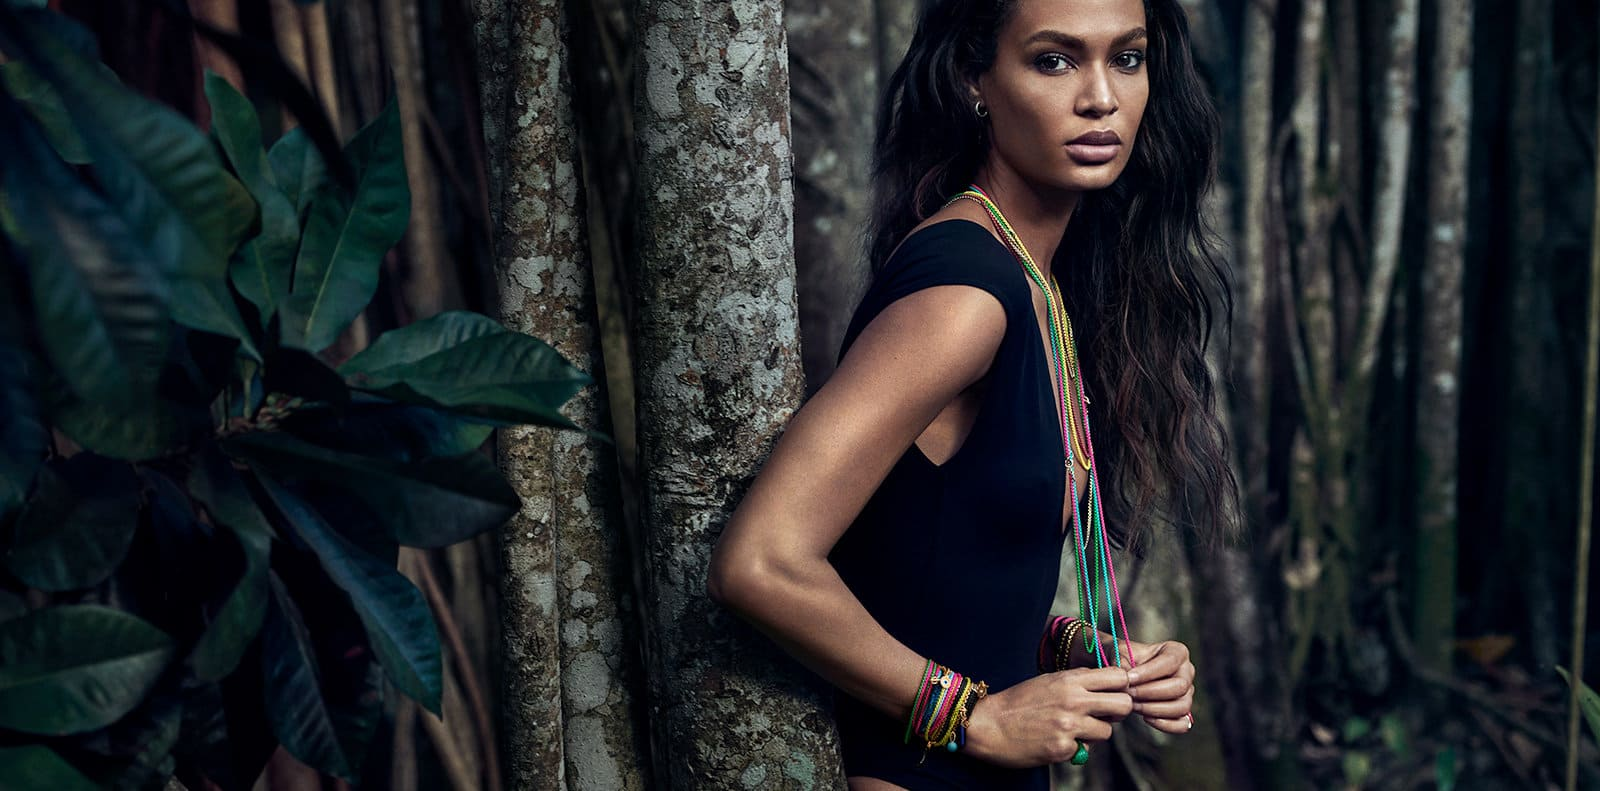 DY Bel Aire colorful chain necklaces in acrylic-coated stainless steel with 14K yellow gold and various amulets on model Joan Smalls in a forest.